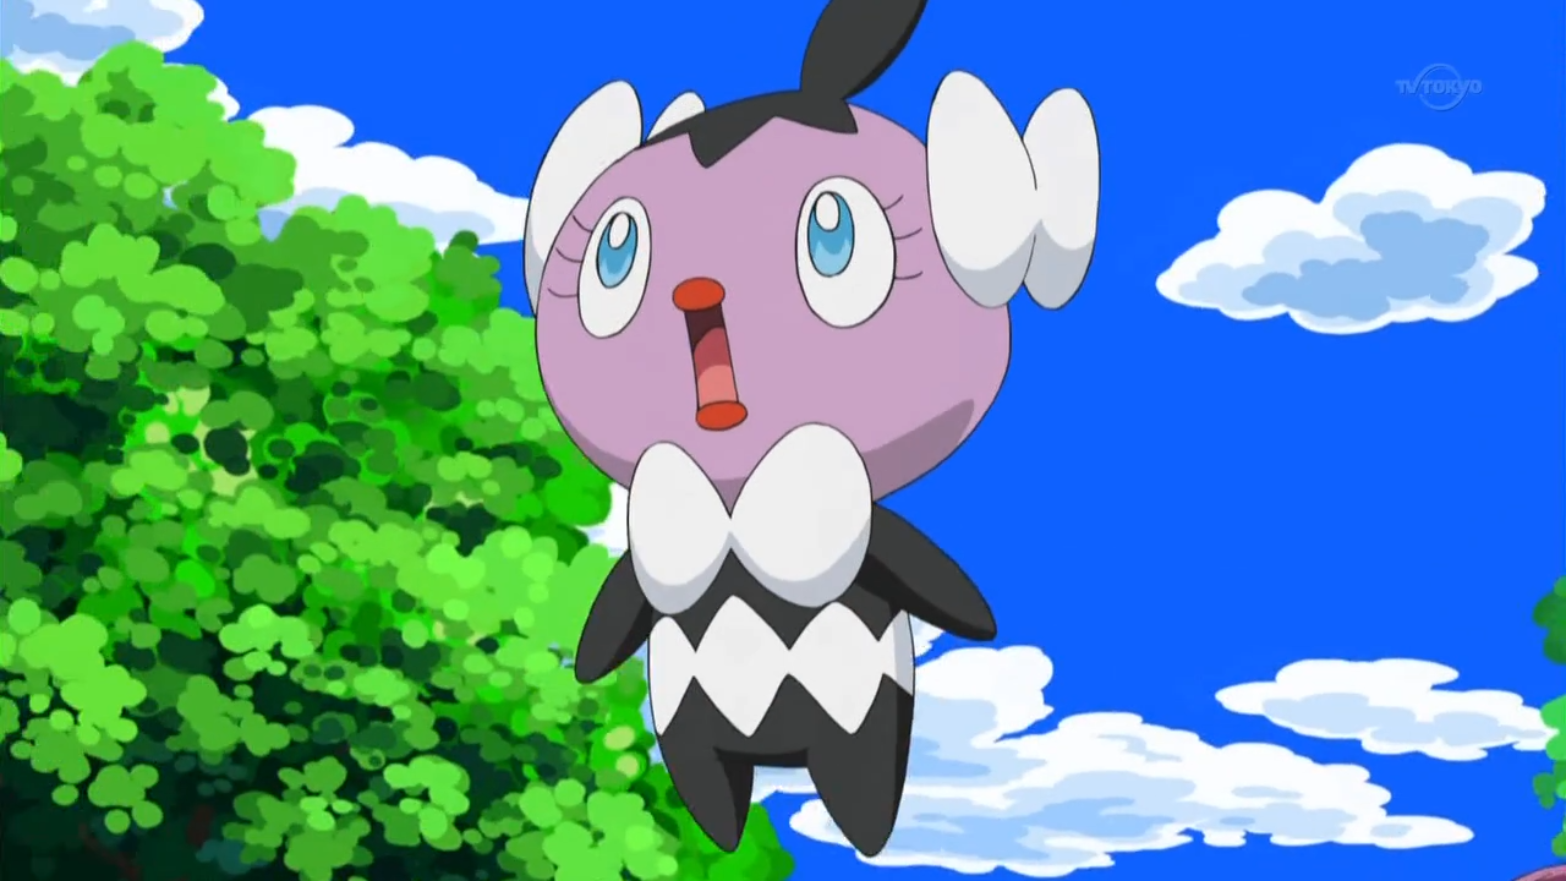 Gothita is Christie's only Pokémon, and was used primarily by Christie to levitate Ash and his friends across a collapsed bridge.